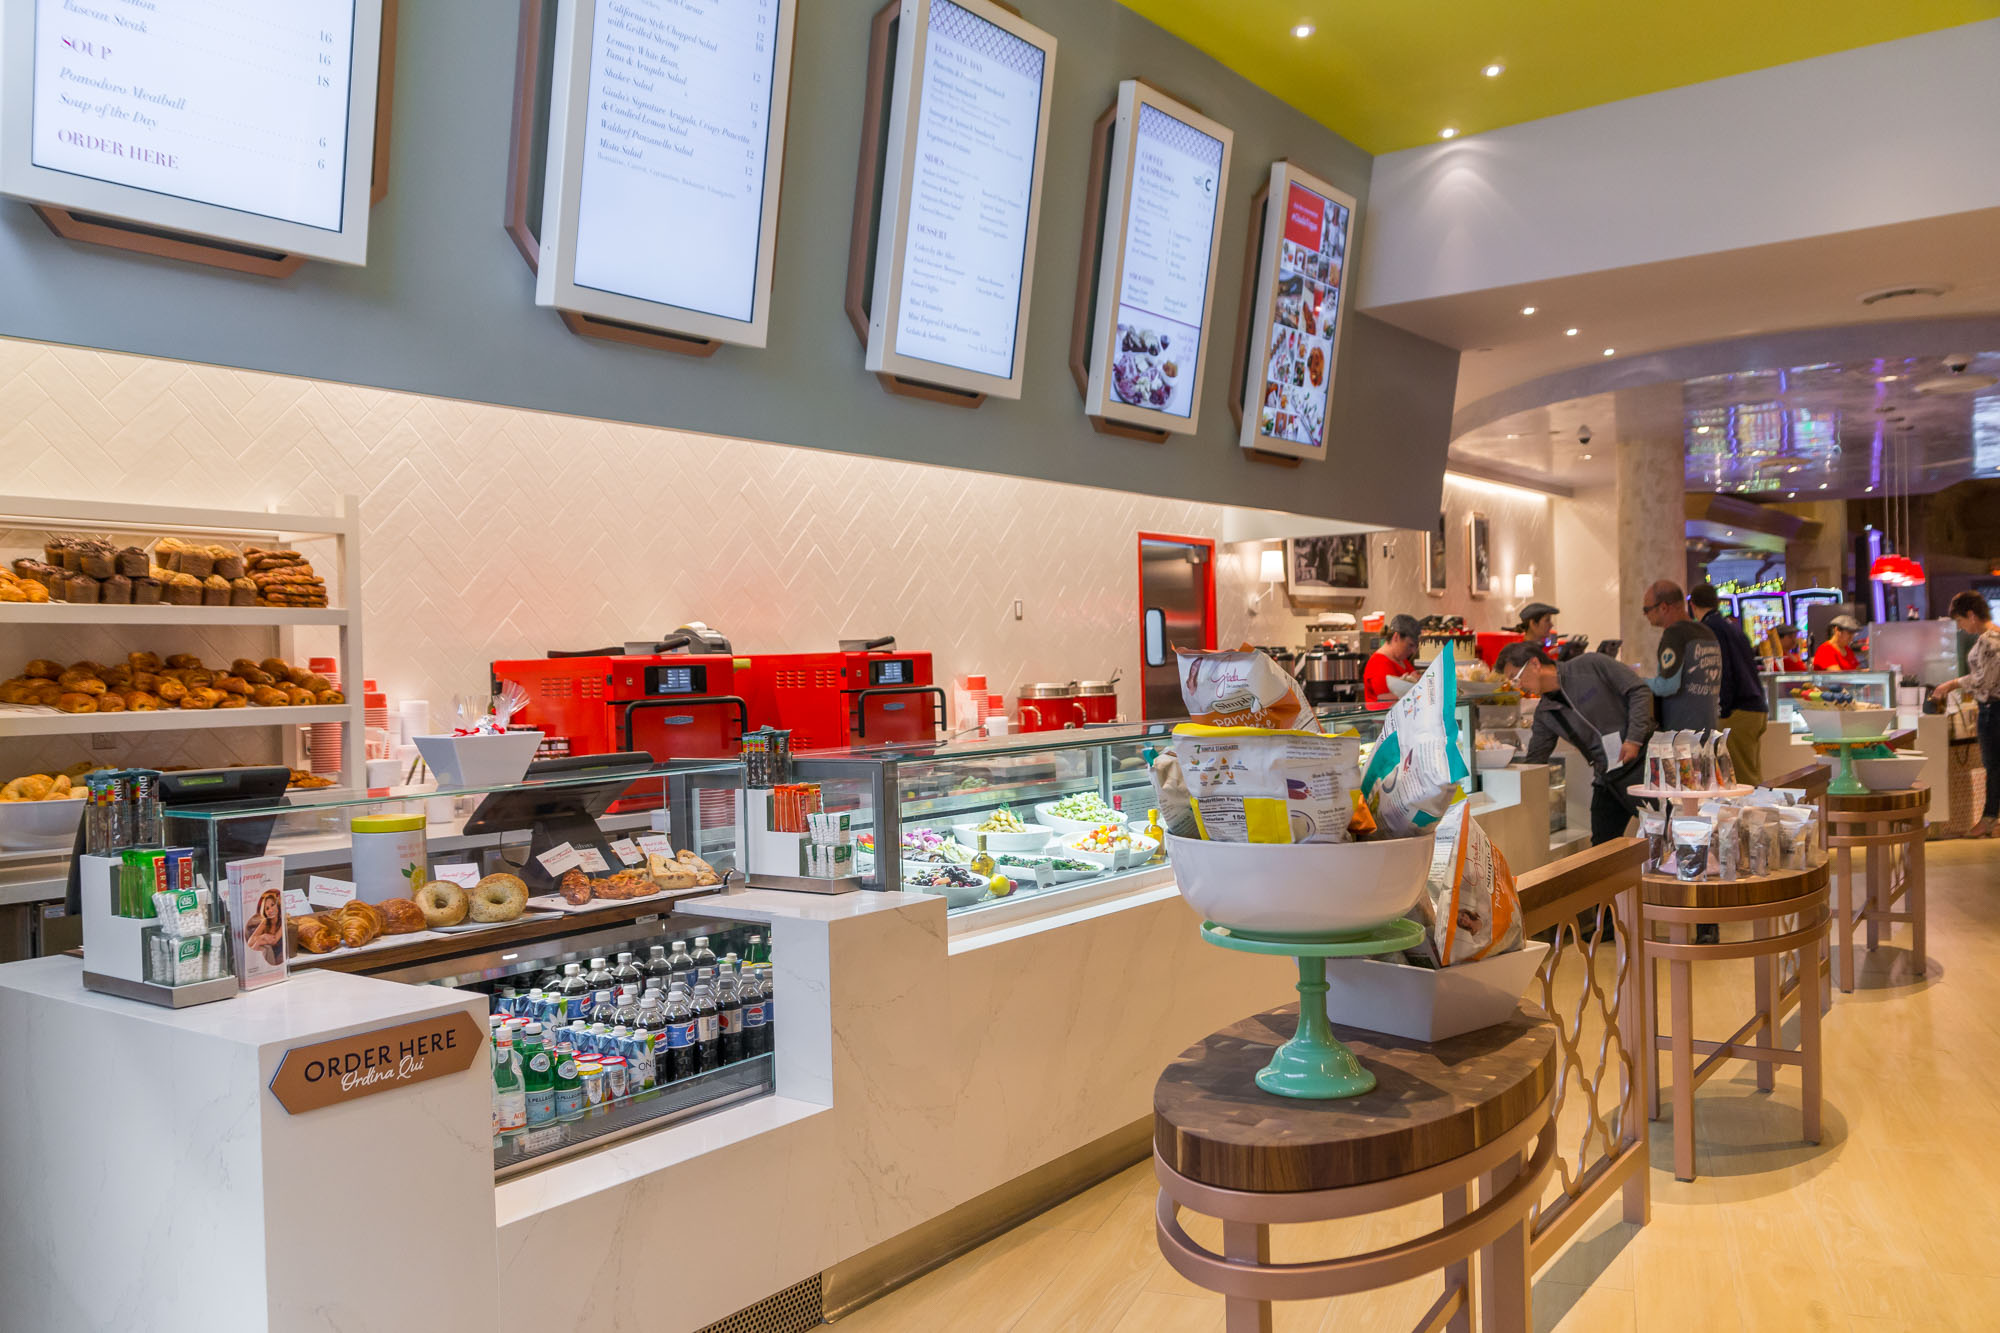 The counter at Pronto by Giada